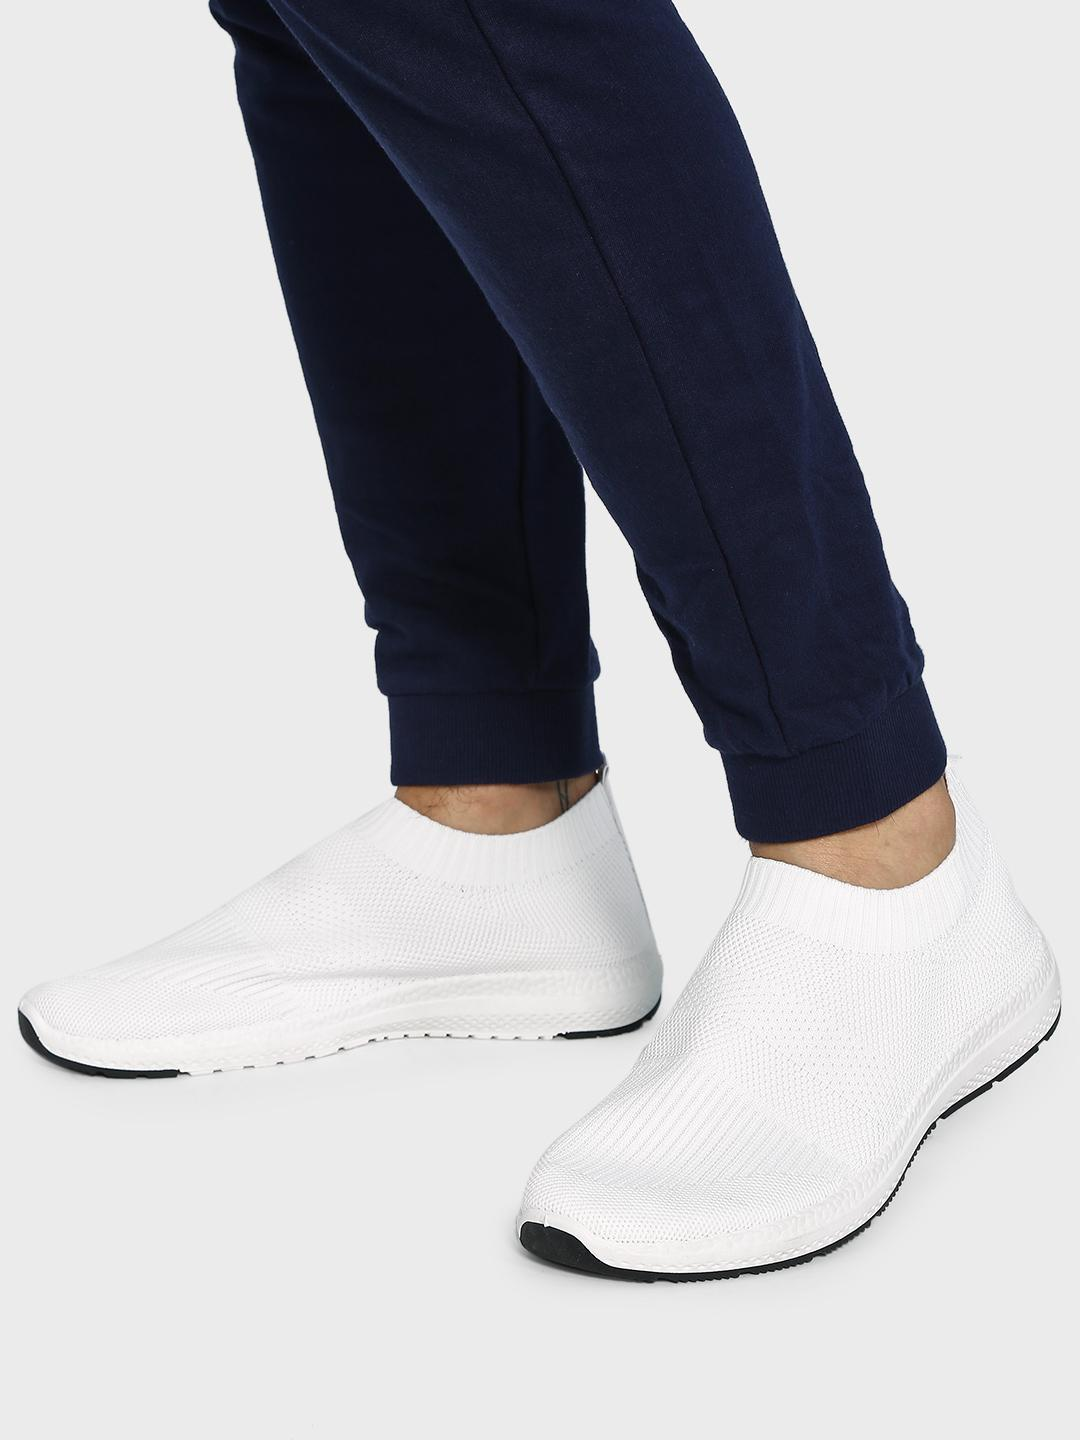 KOOVS White Contrast Sole Knitted Sockliner Shoes 1